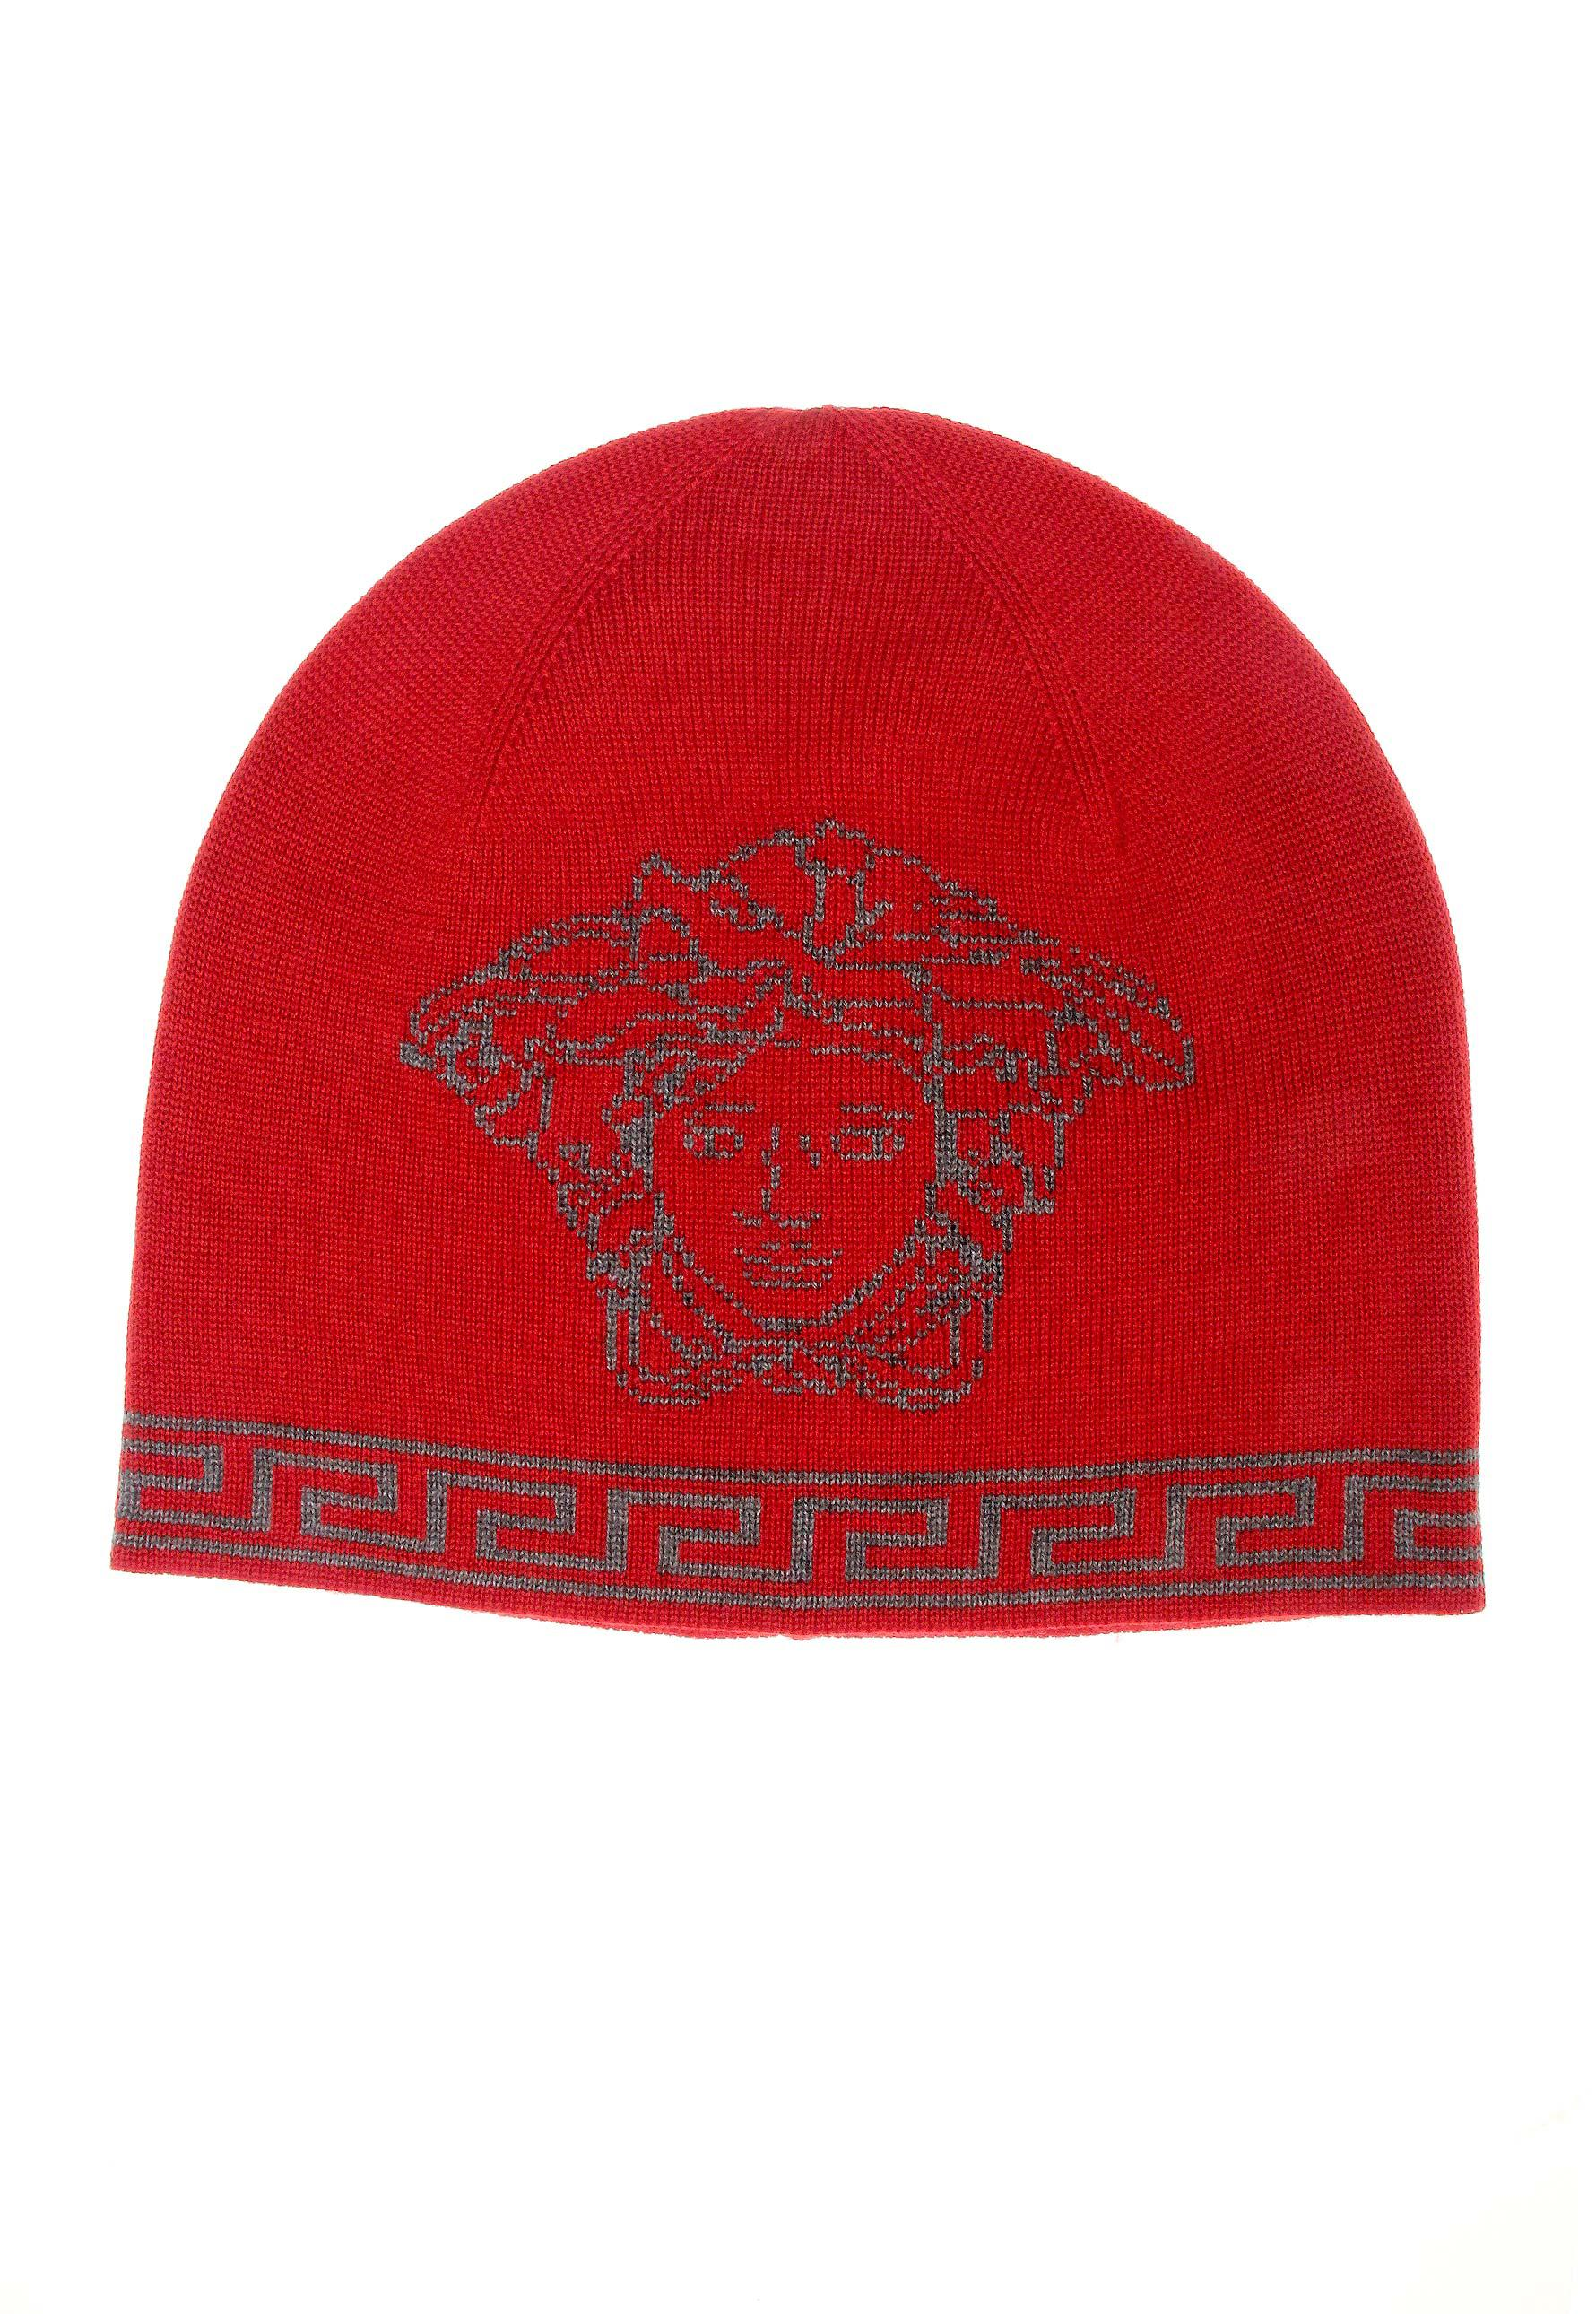 030e7011f2 Versace Medusa And Greca Jacquard Beanie Hat Red in Red for Men - Lyst